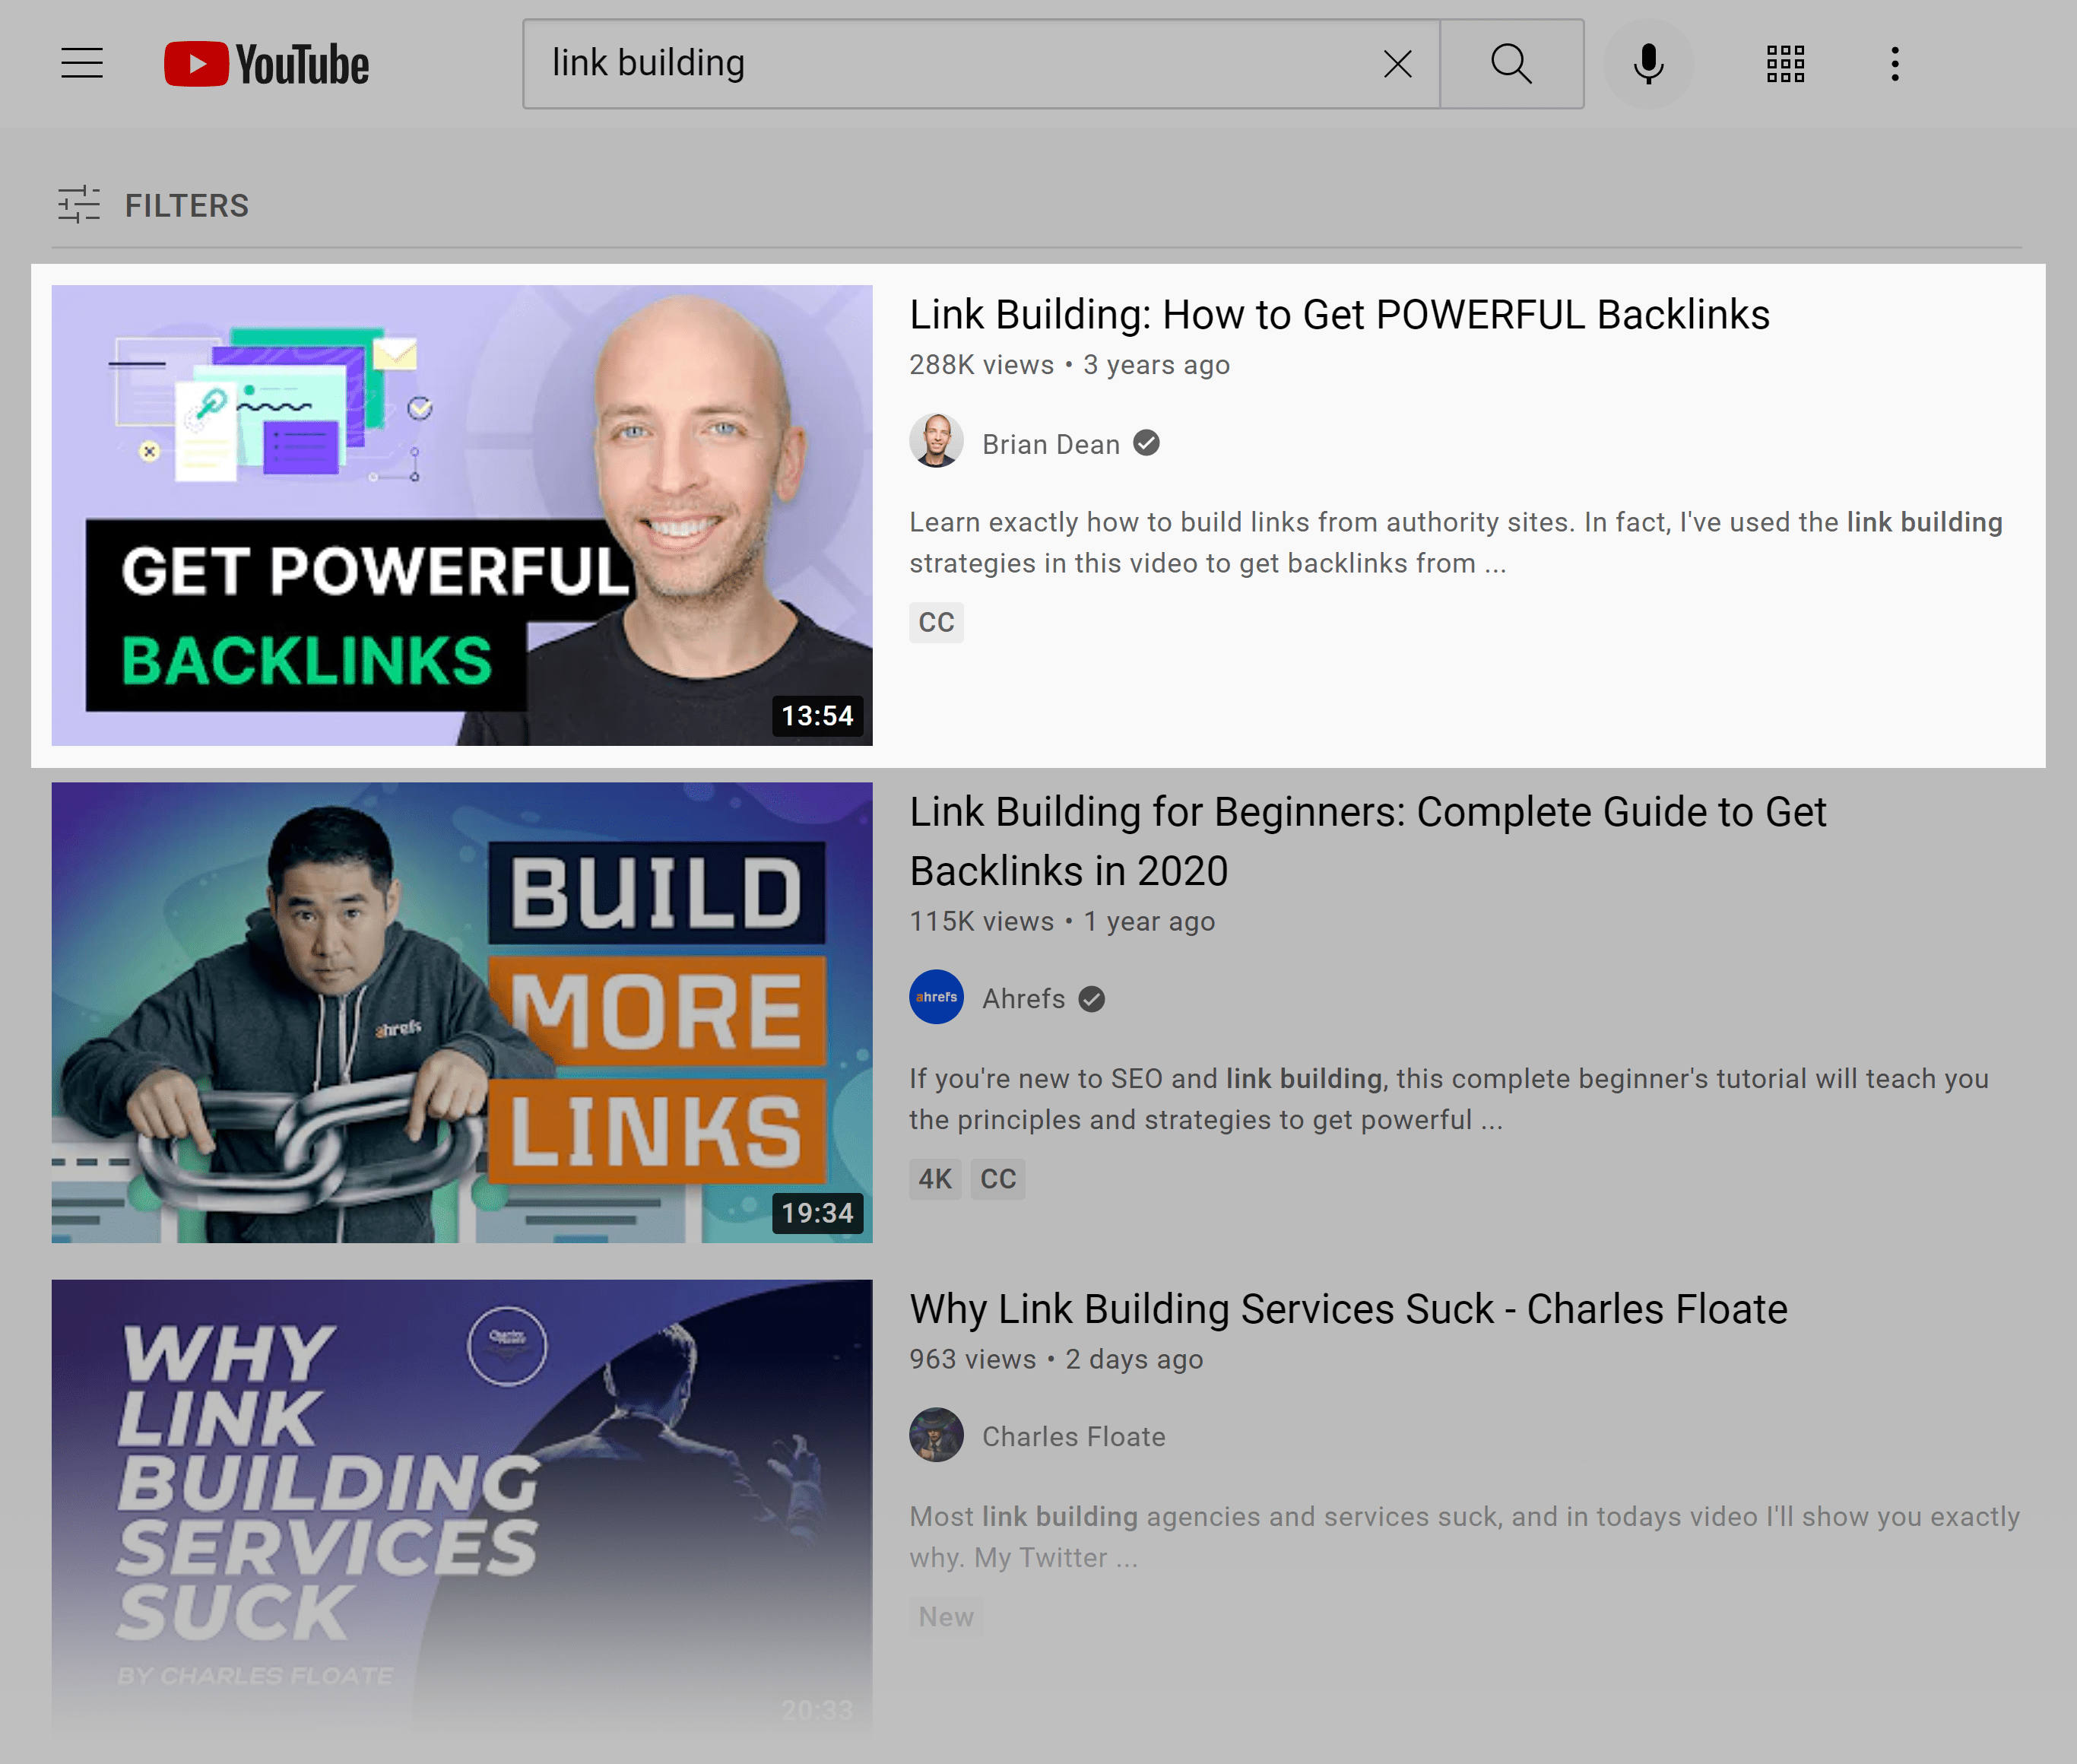 YouTube SERP – Link building